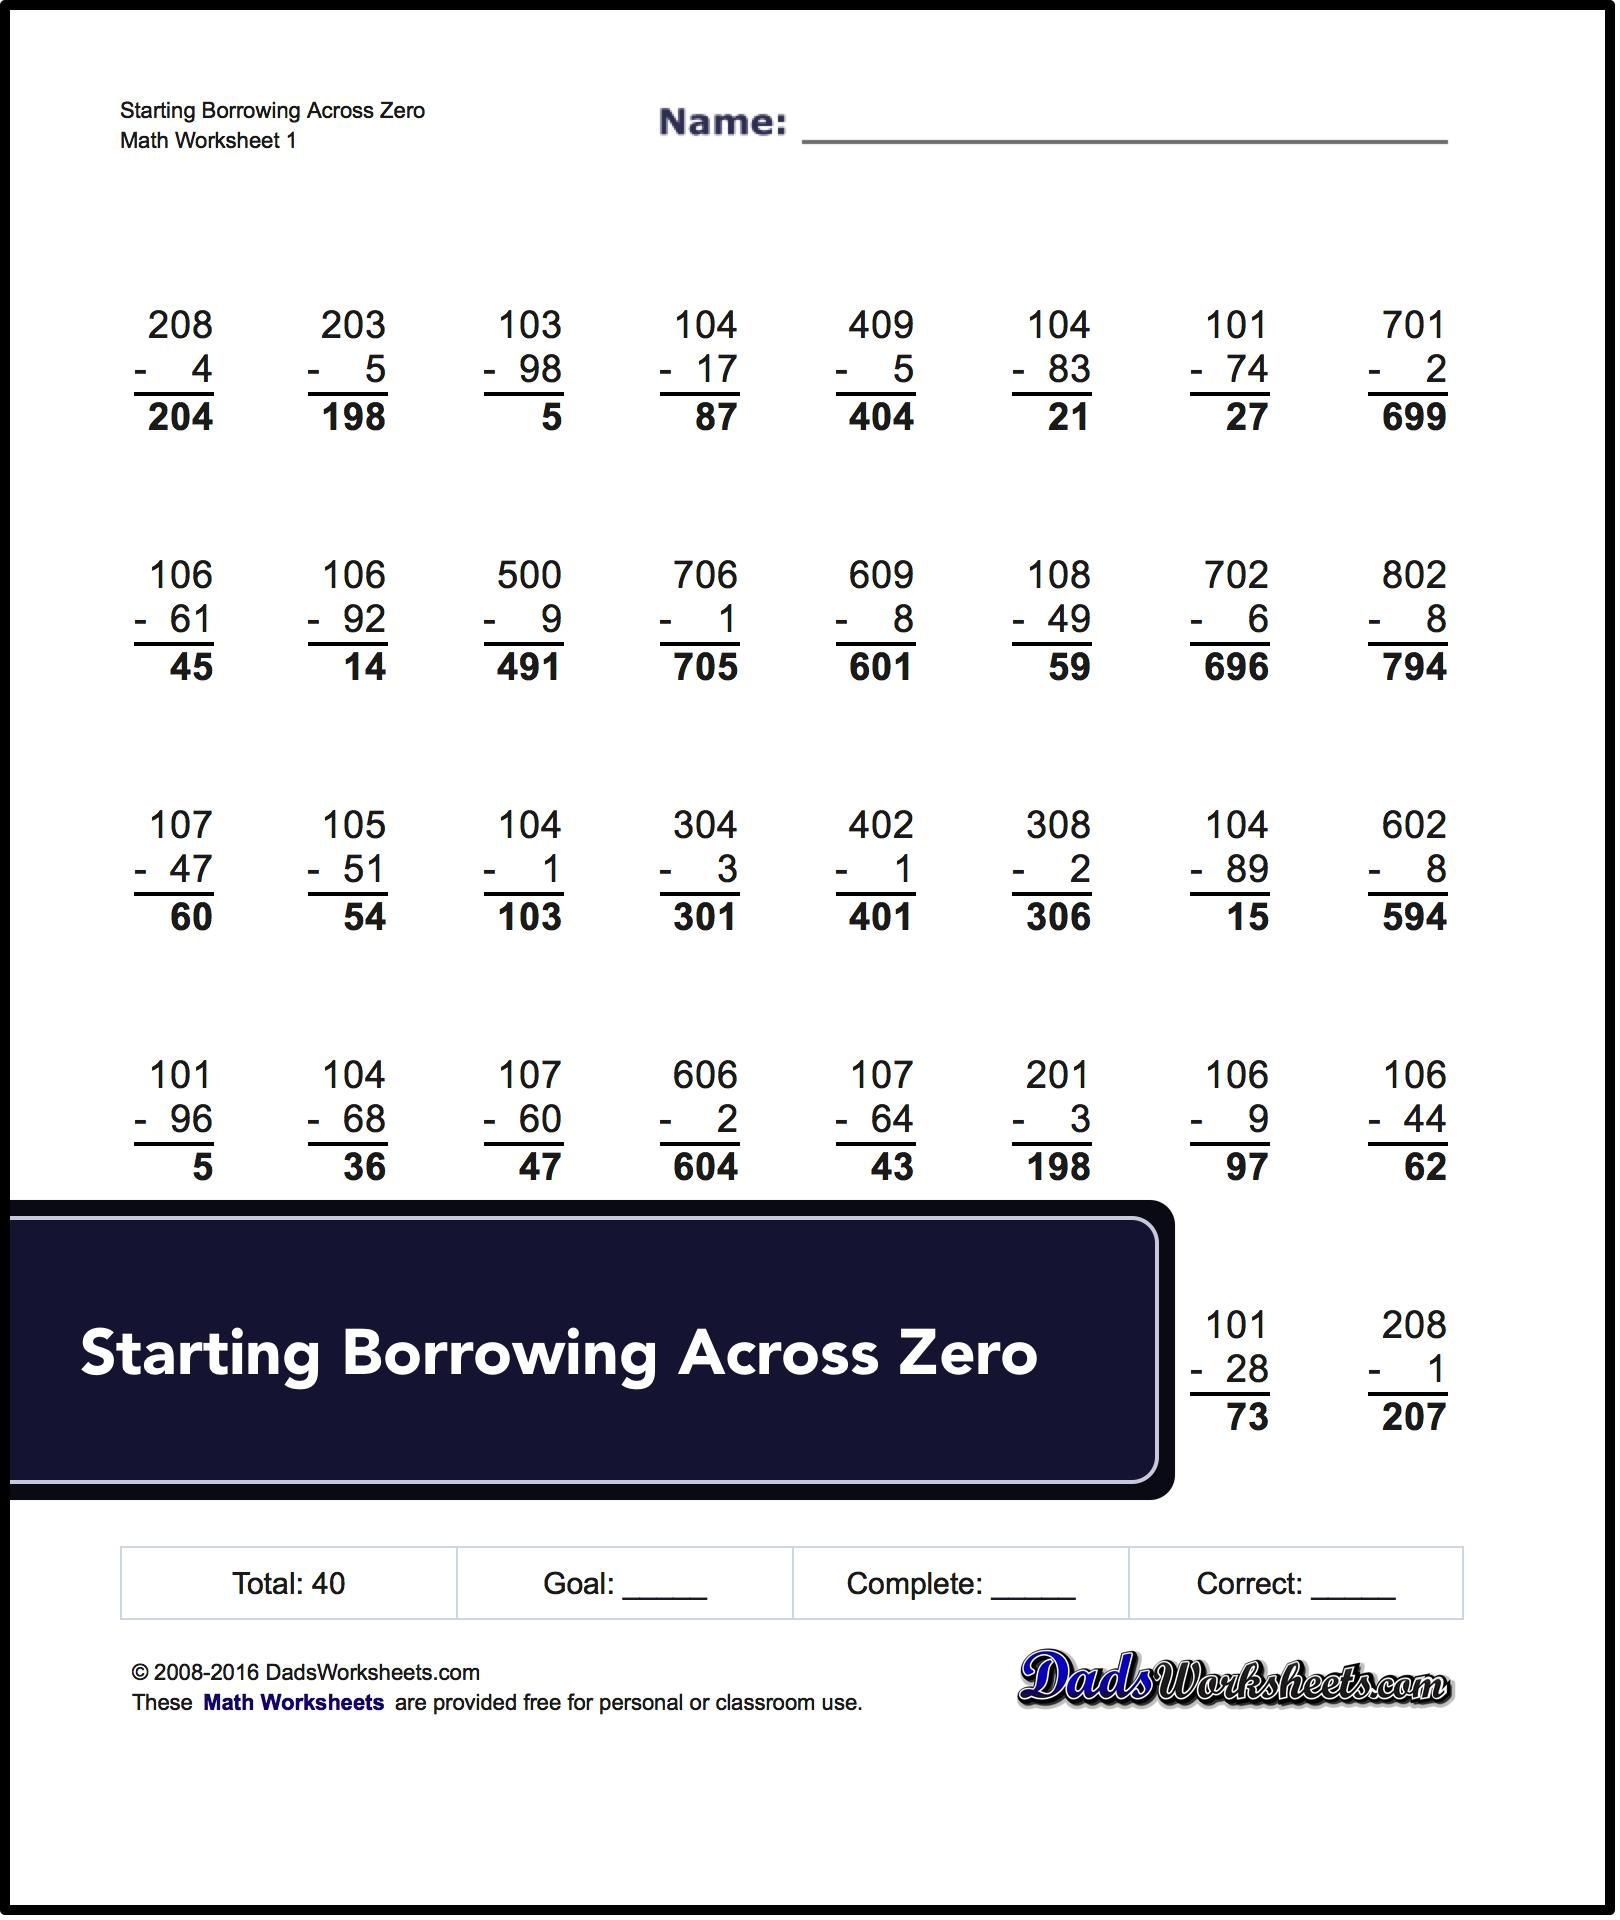 worksheet Subtraction With Regrouping Practice these subtraction worksheets focus on incorporating borrowing across zeroes are great worksheets